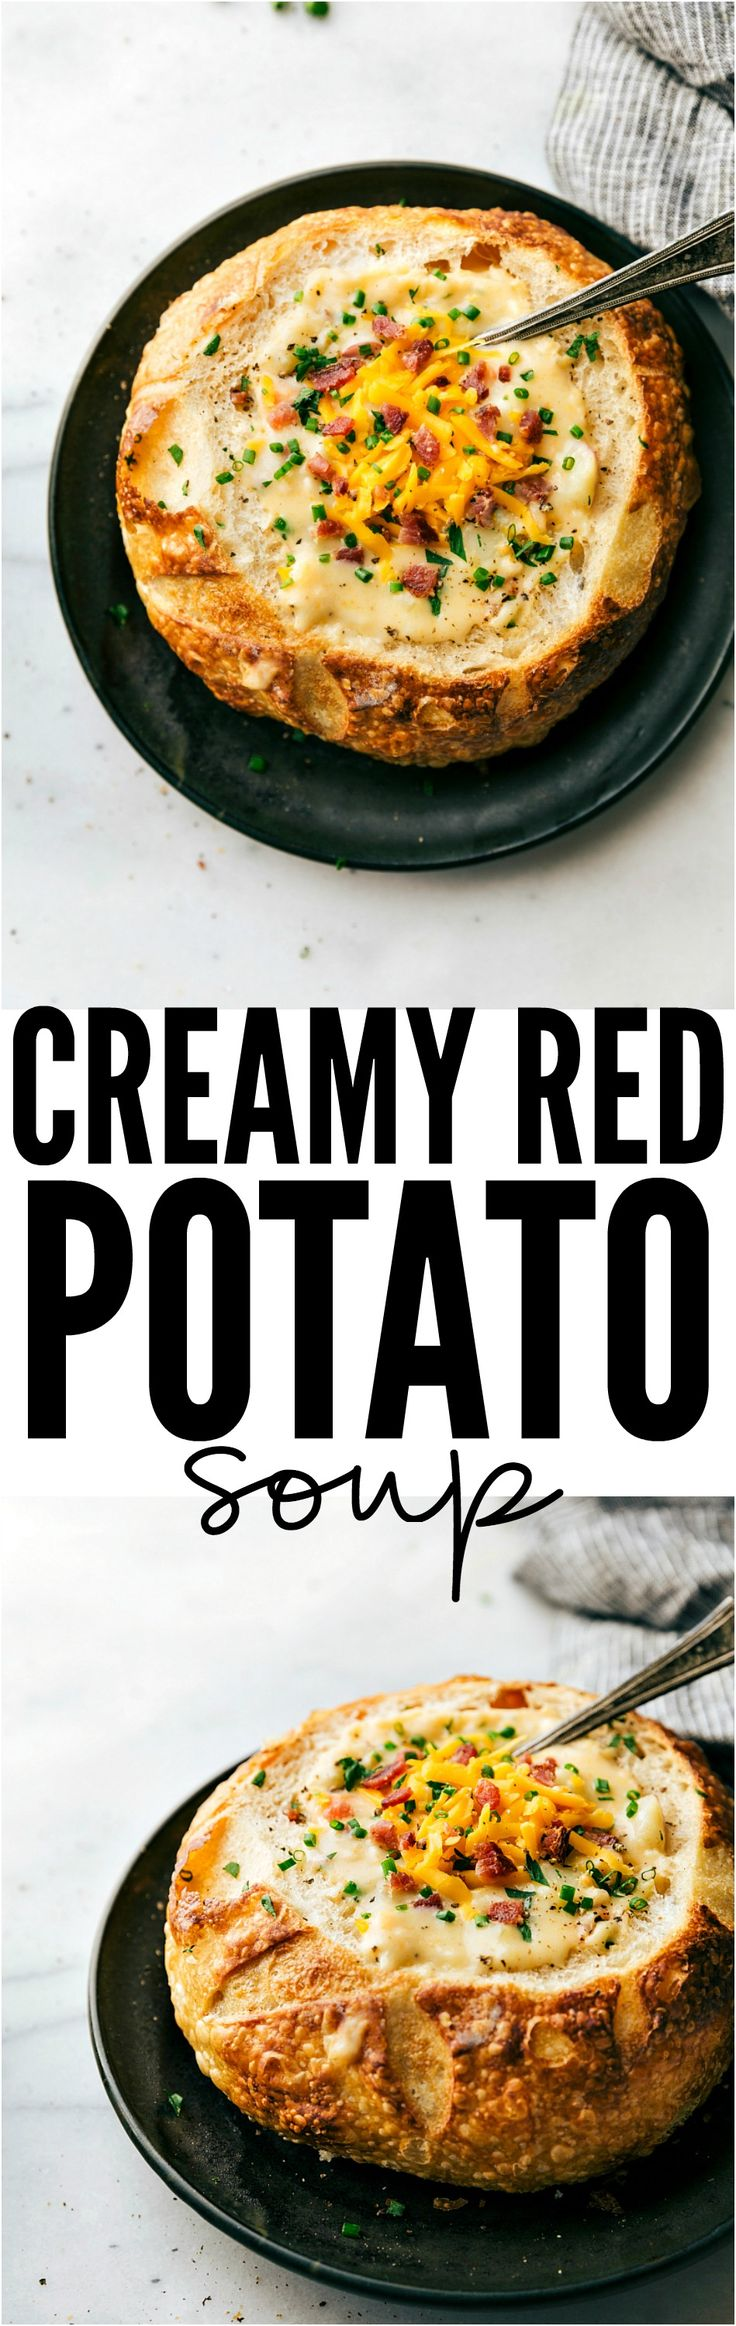 Creamy and cheesy red potato soup that the whole family will love!